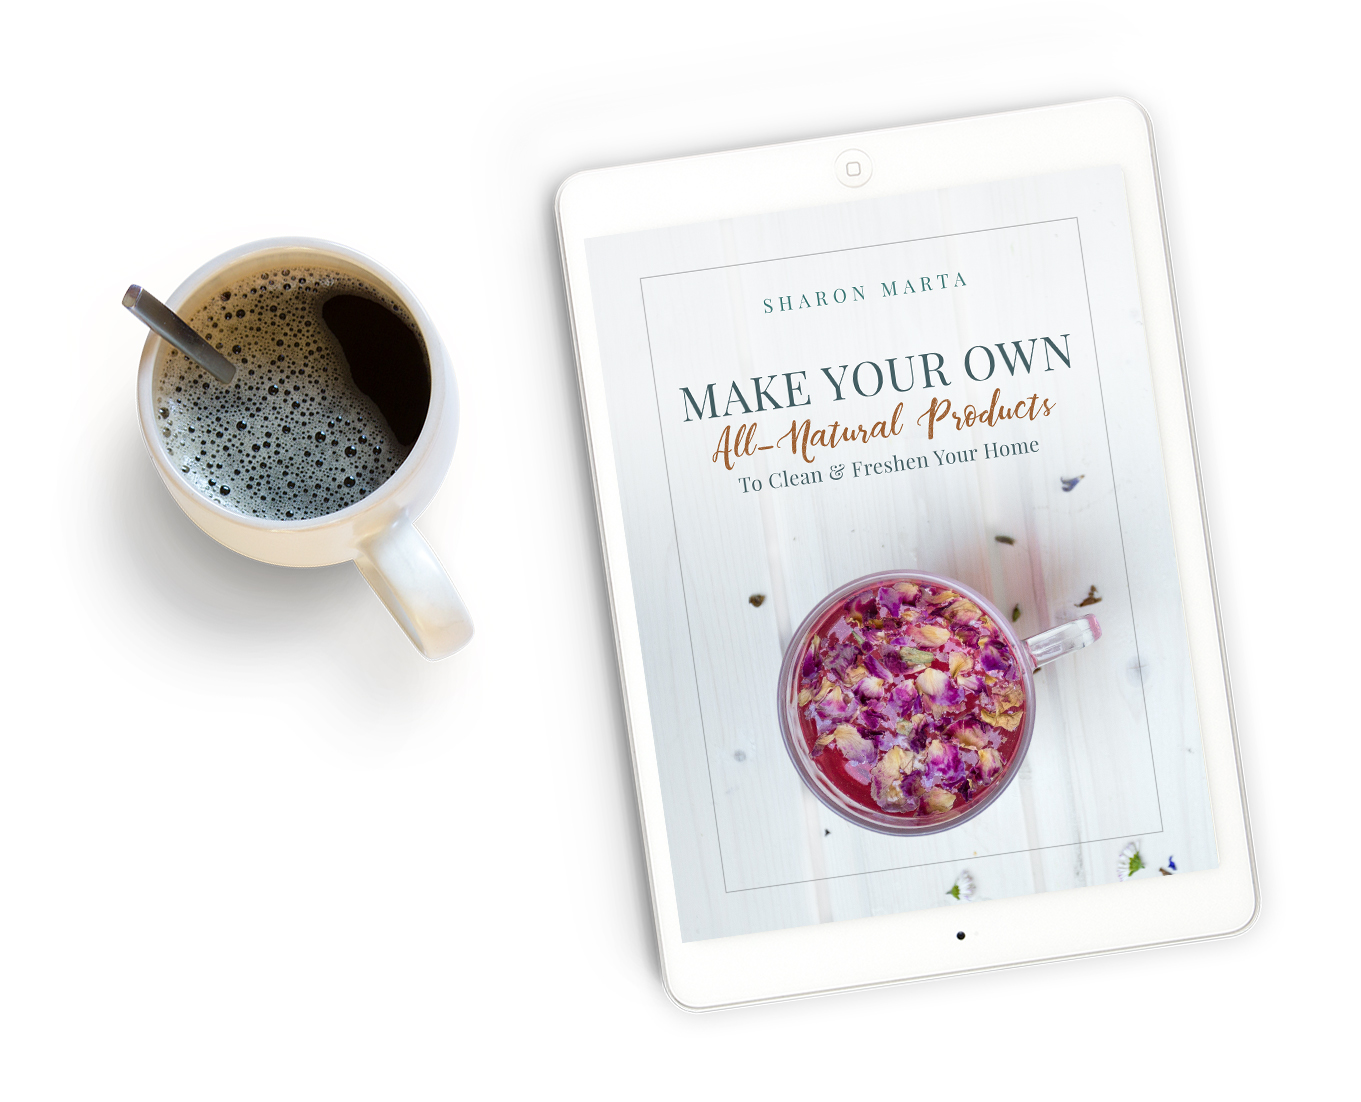 Free Ebook: Make Your Own All-Natural Products To Clean & Freshen your Home